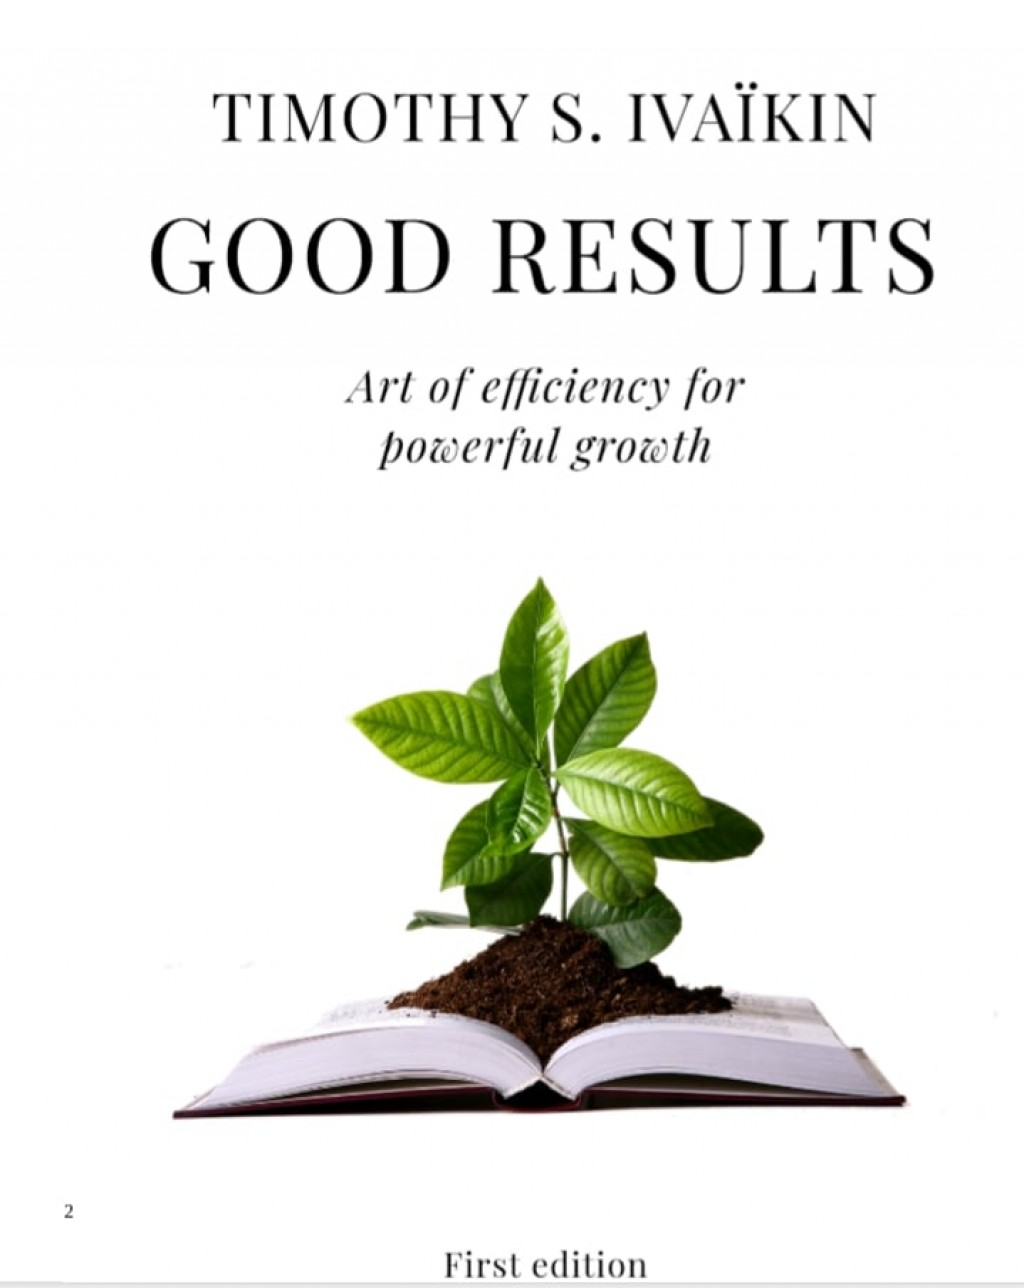 Good Results Art of efficiency for powerful growth By Timothy Ivaikin